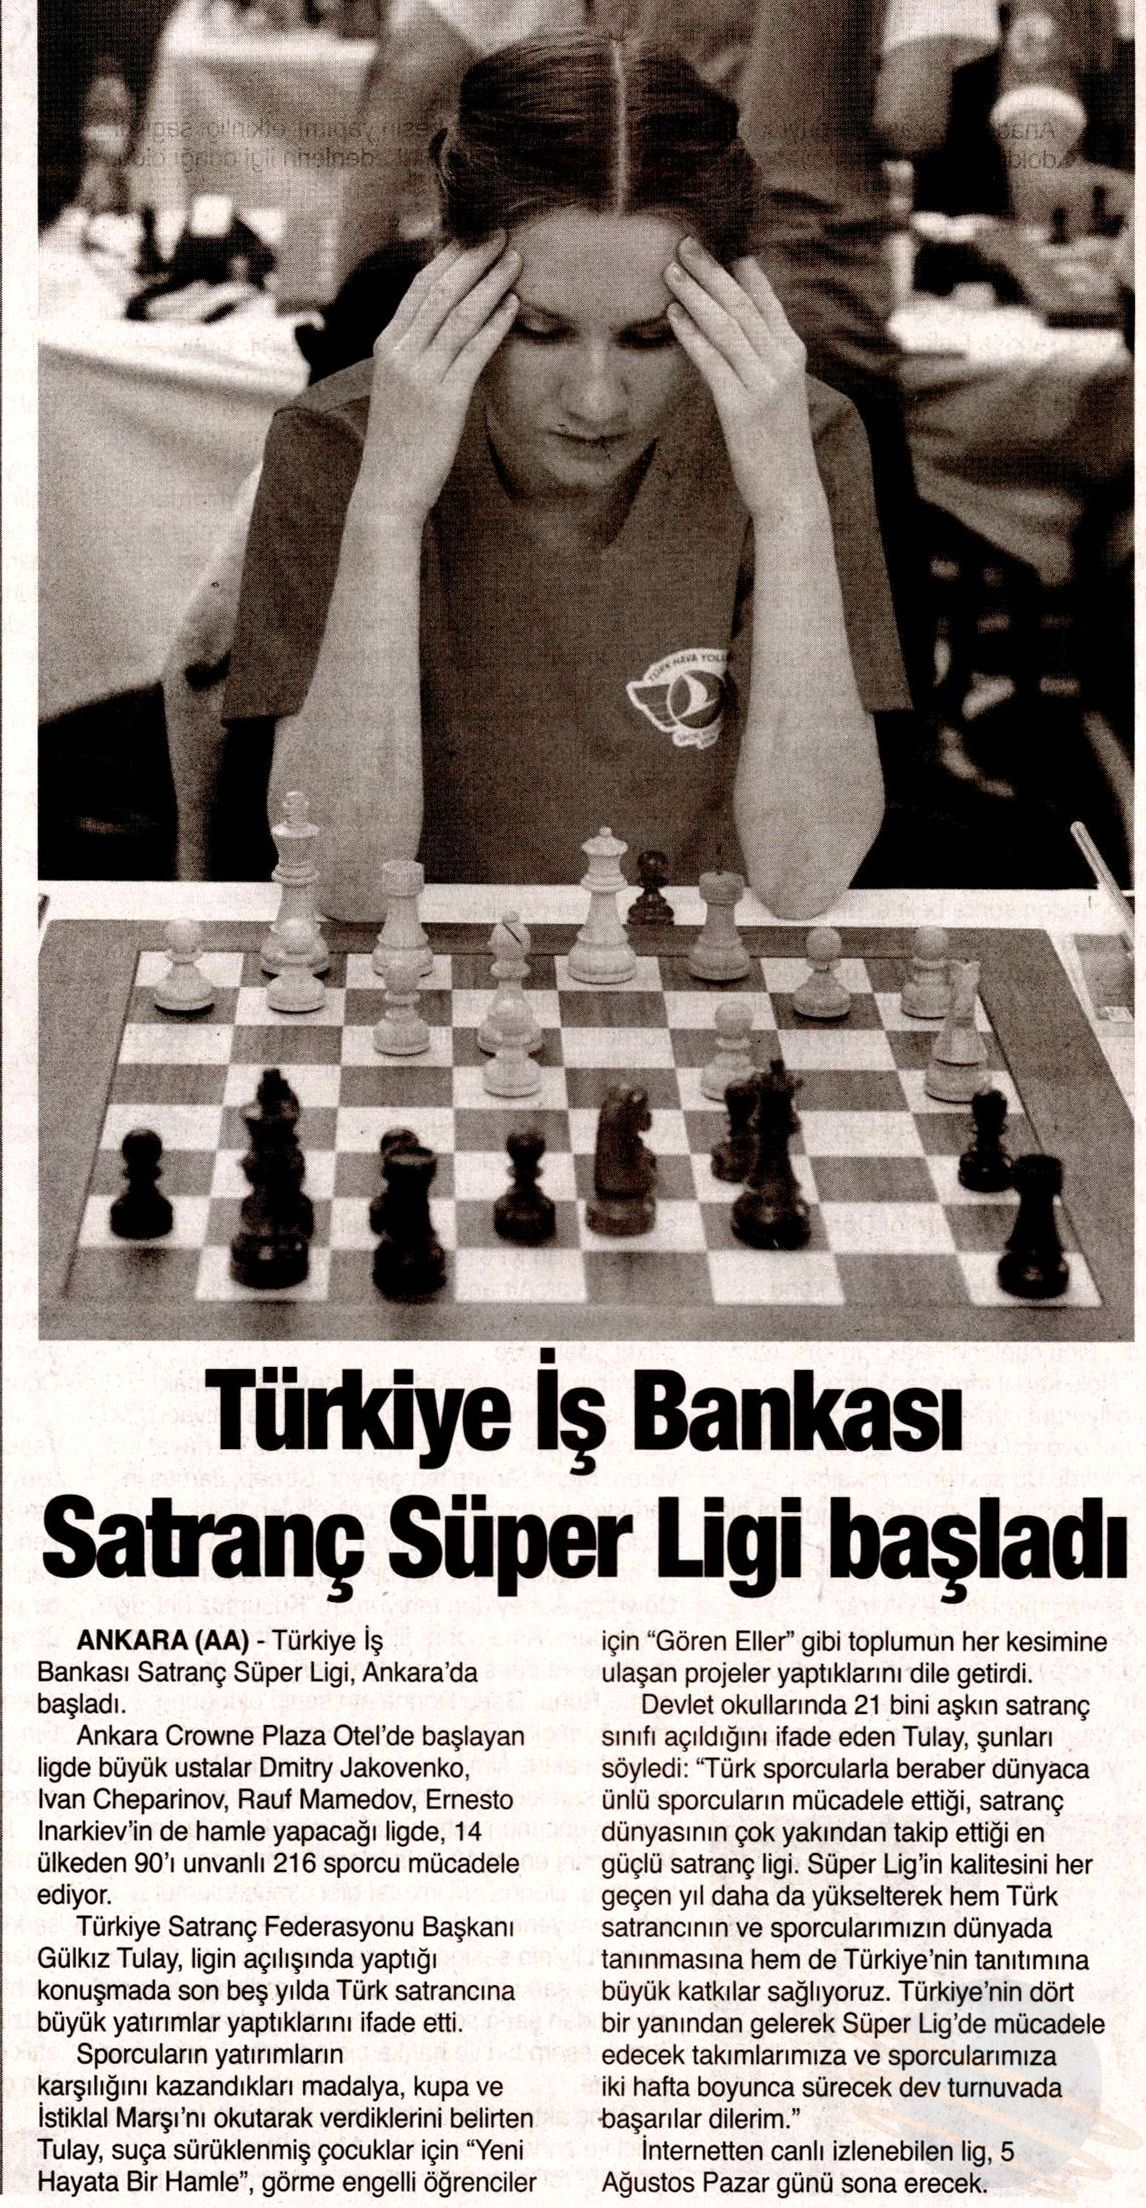 2018-07-27 tunaydin turkiye is bankasi satranc super ligi basladi 5667672